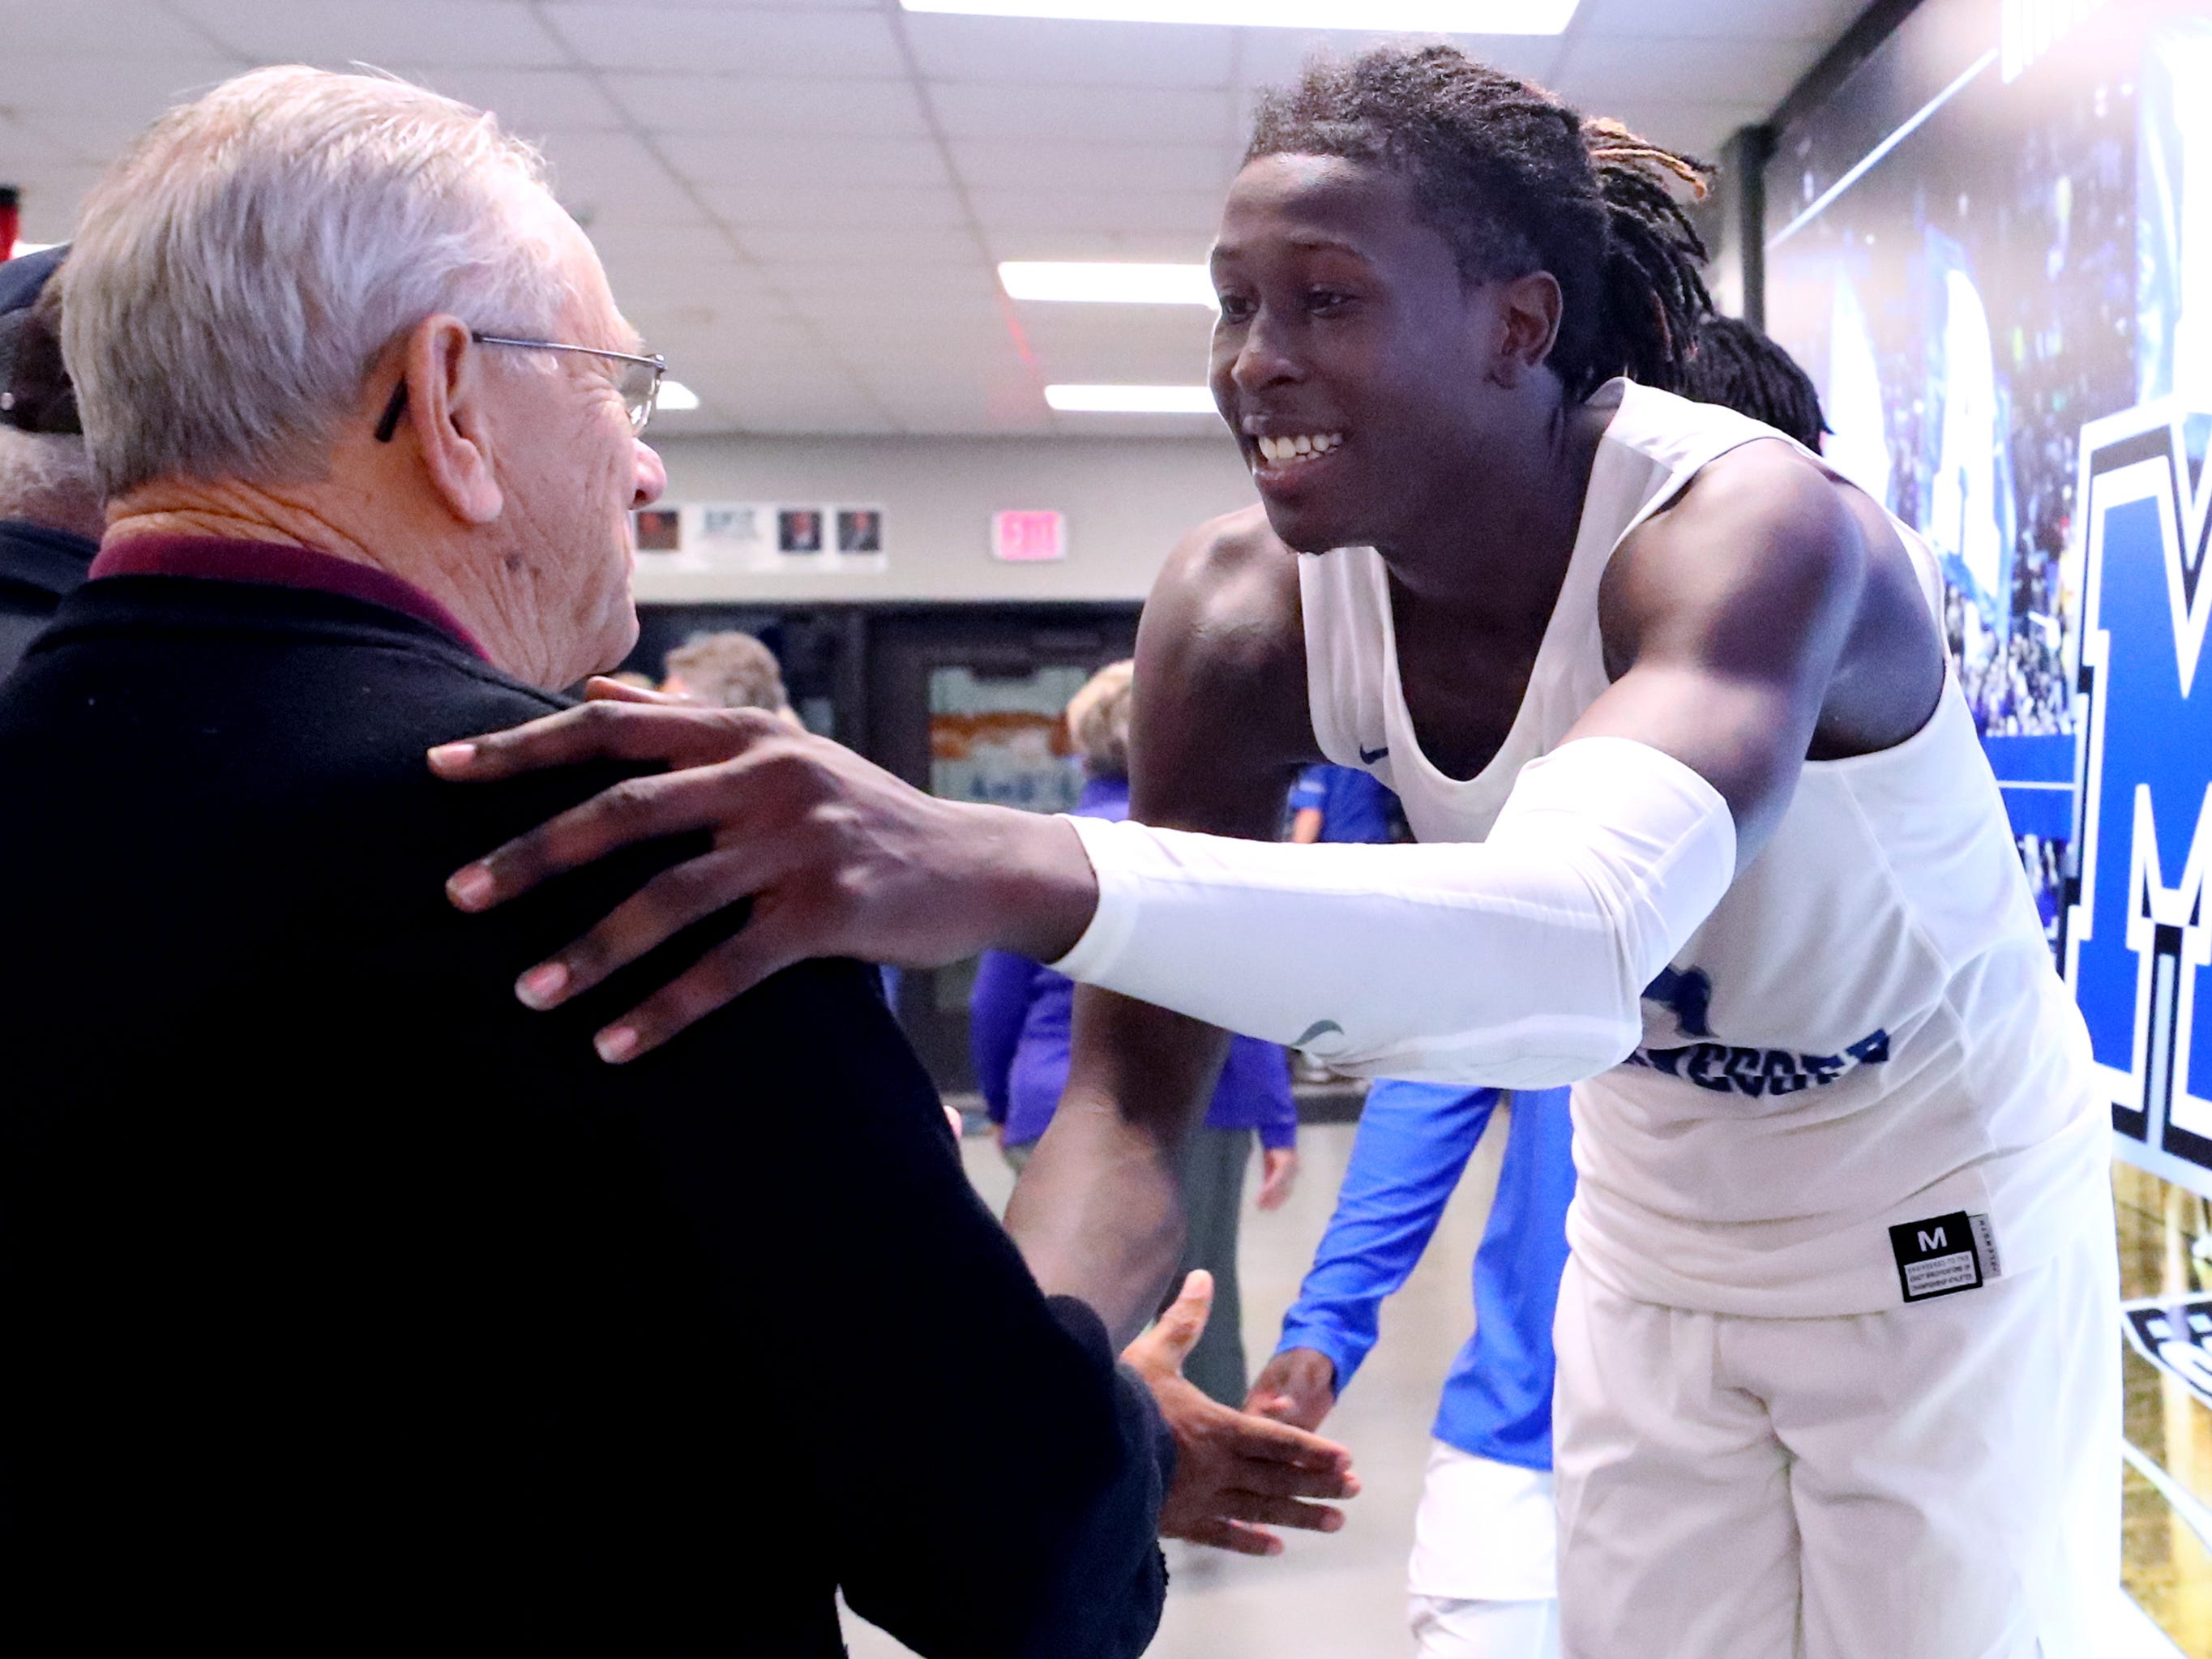 MTSU's James Hawthorne (4) thanks fans for coming to the game as they leave after MTSU defeated Lees-McRae on Tuesday, Nov. 6, 2018.